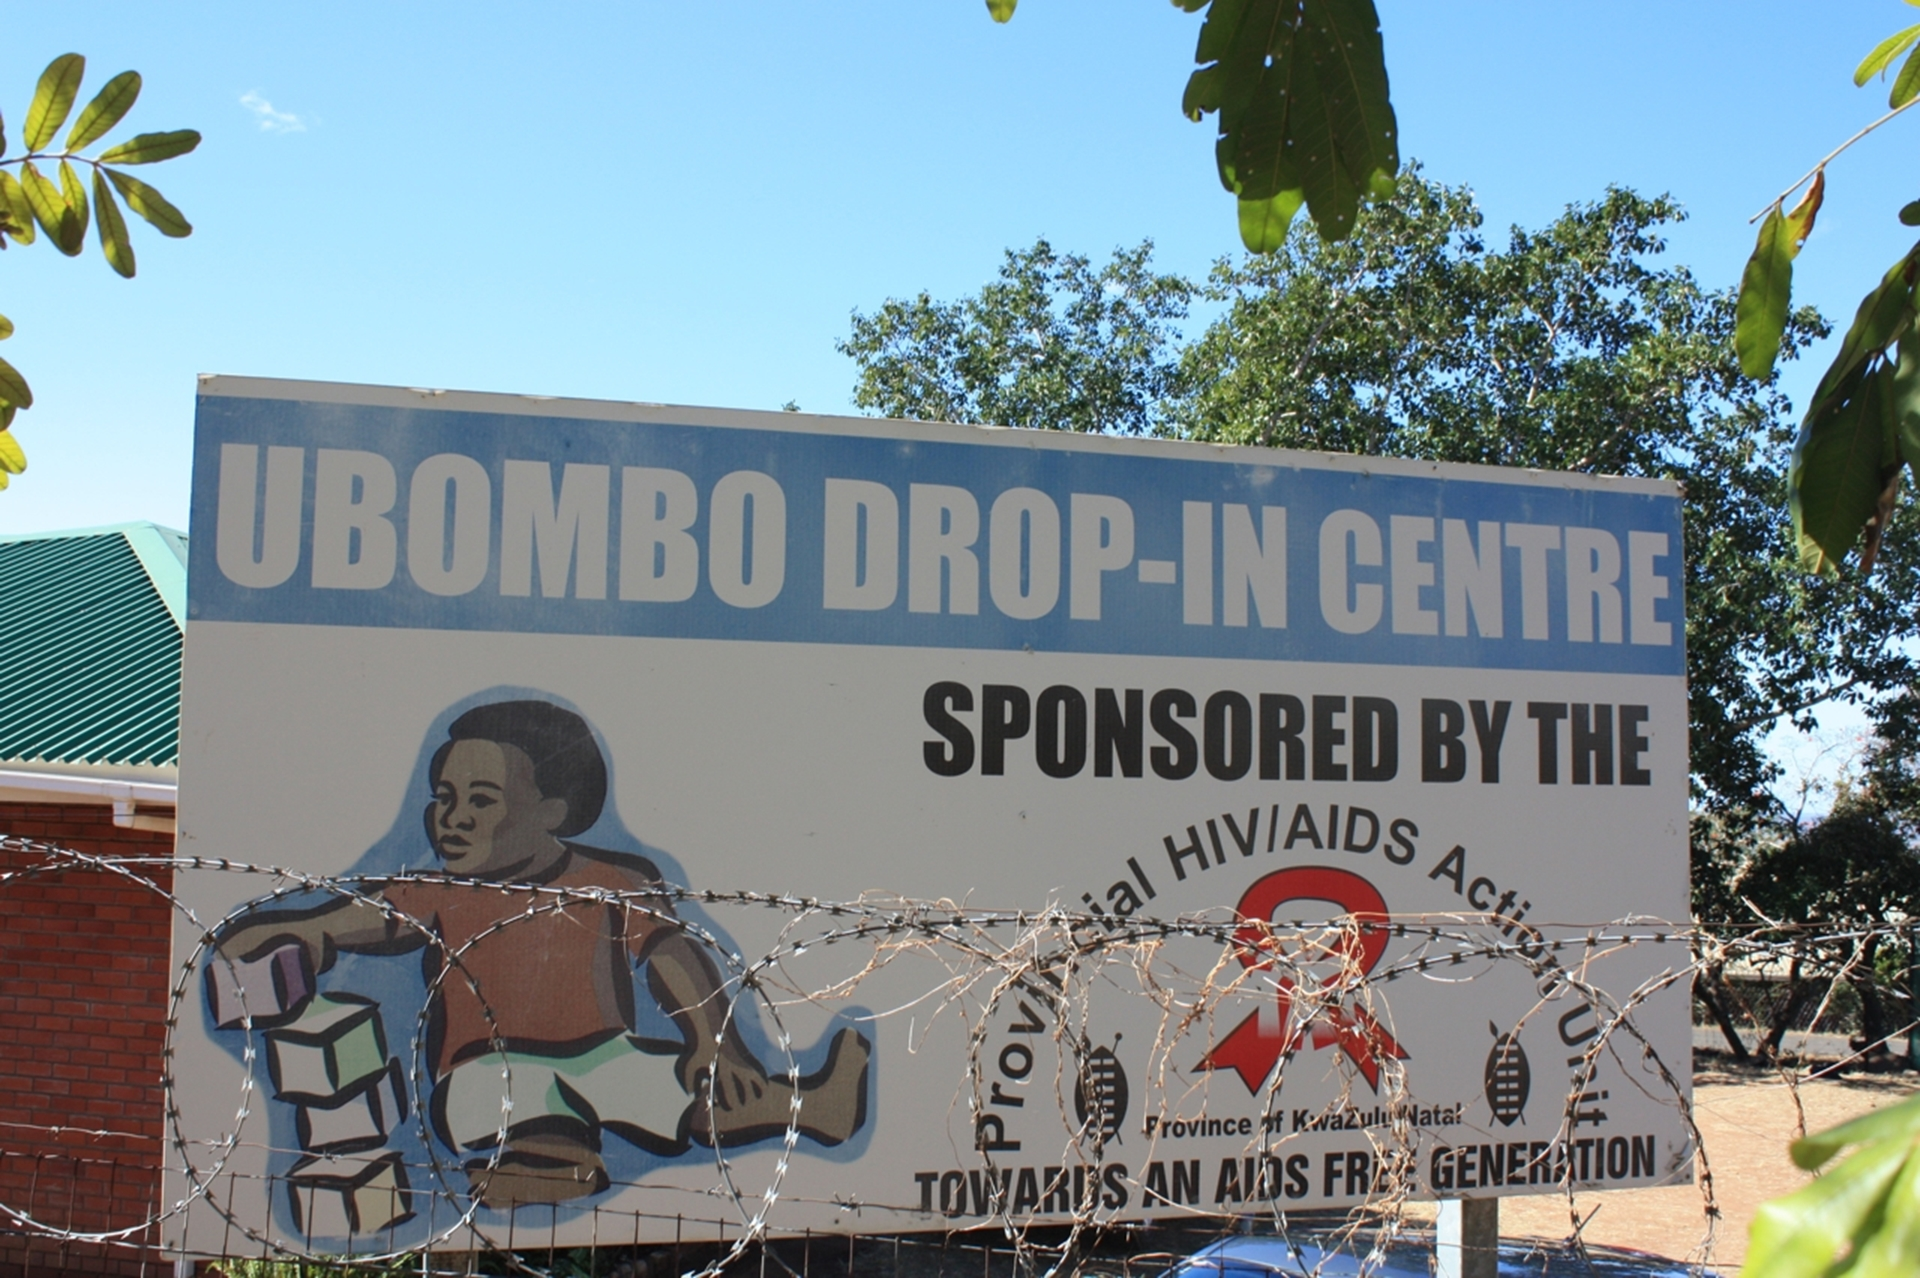 Ubombo Drop-In Centre